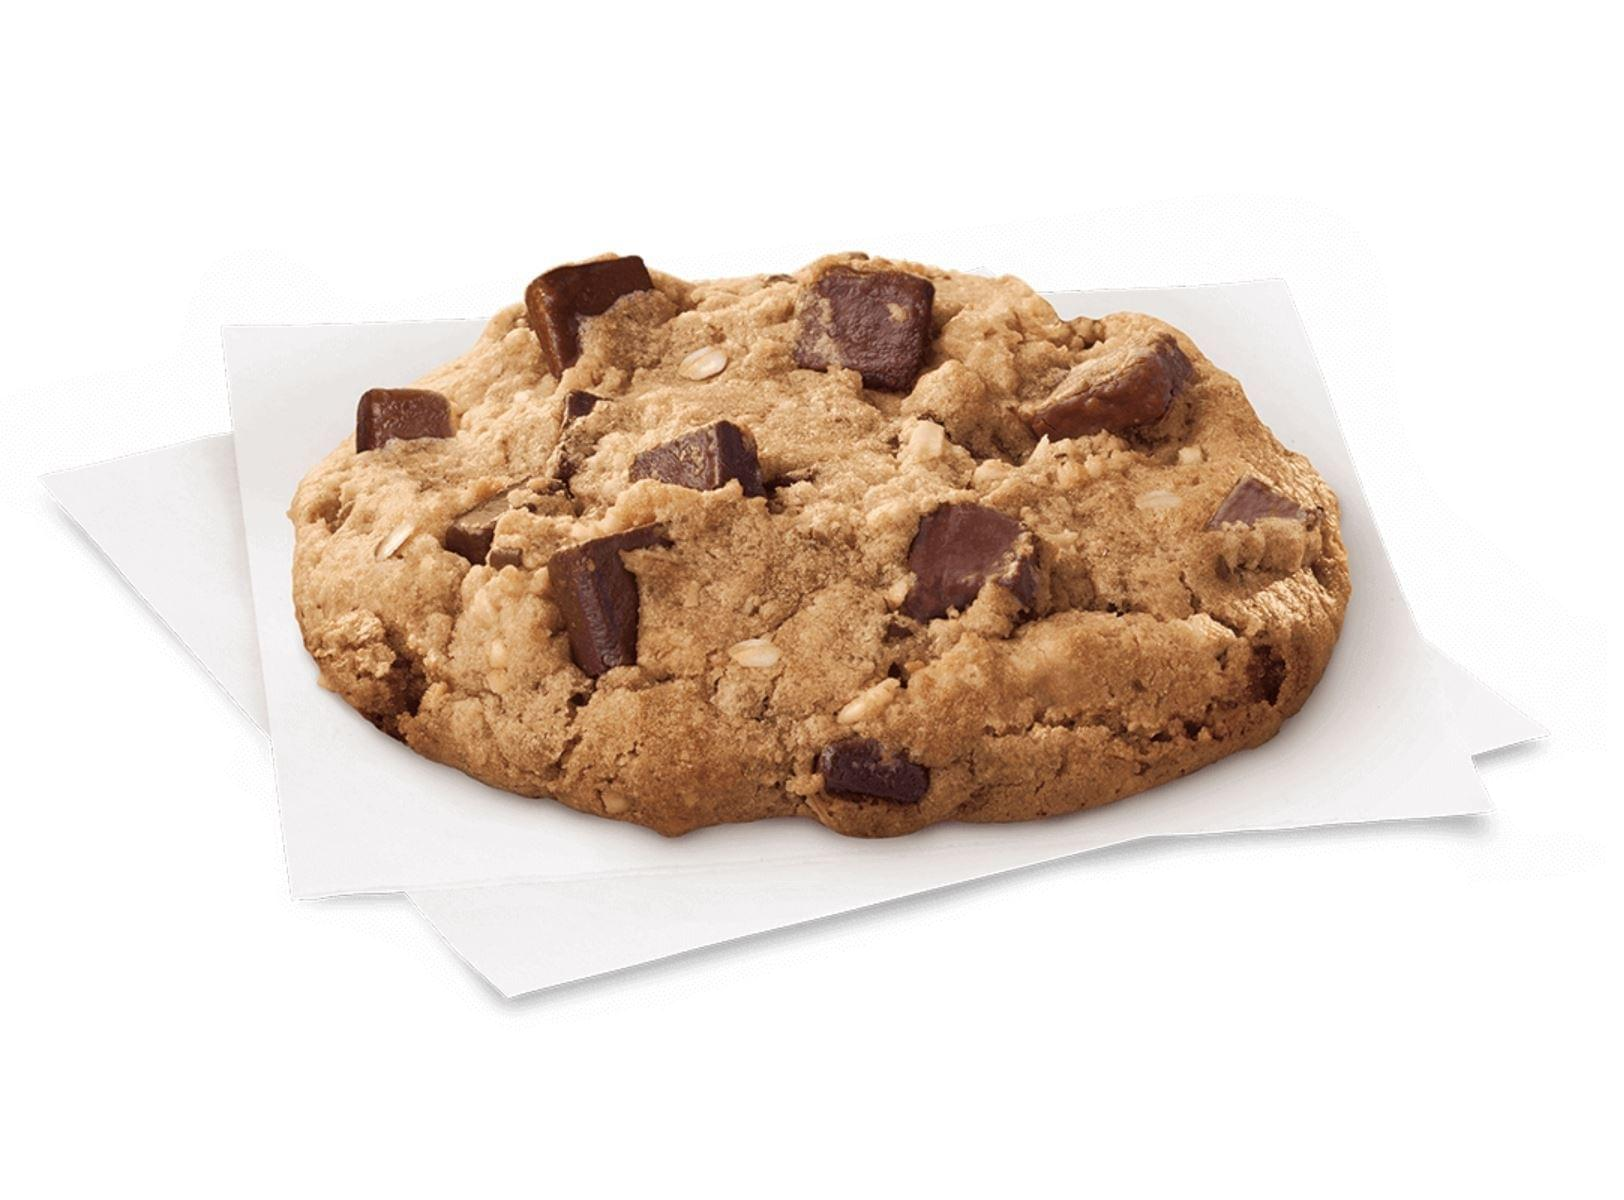 Chick-fil-A Chocolate Chunk Cookie Nutrition Facts